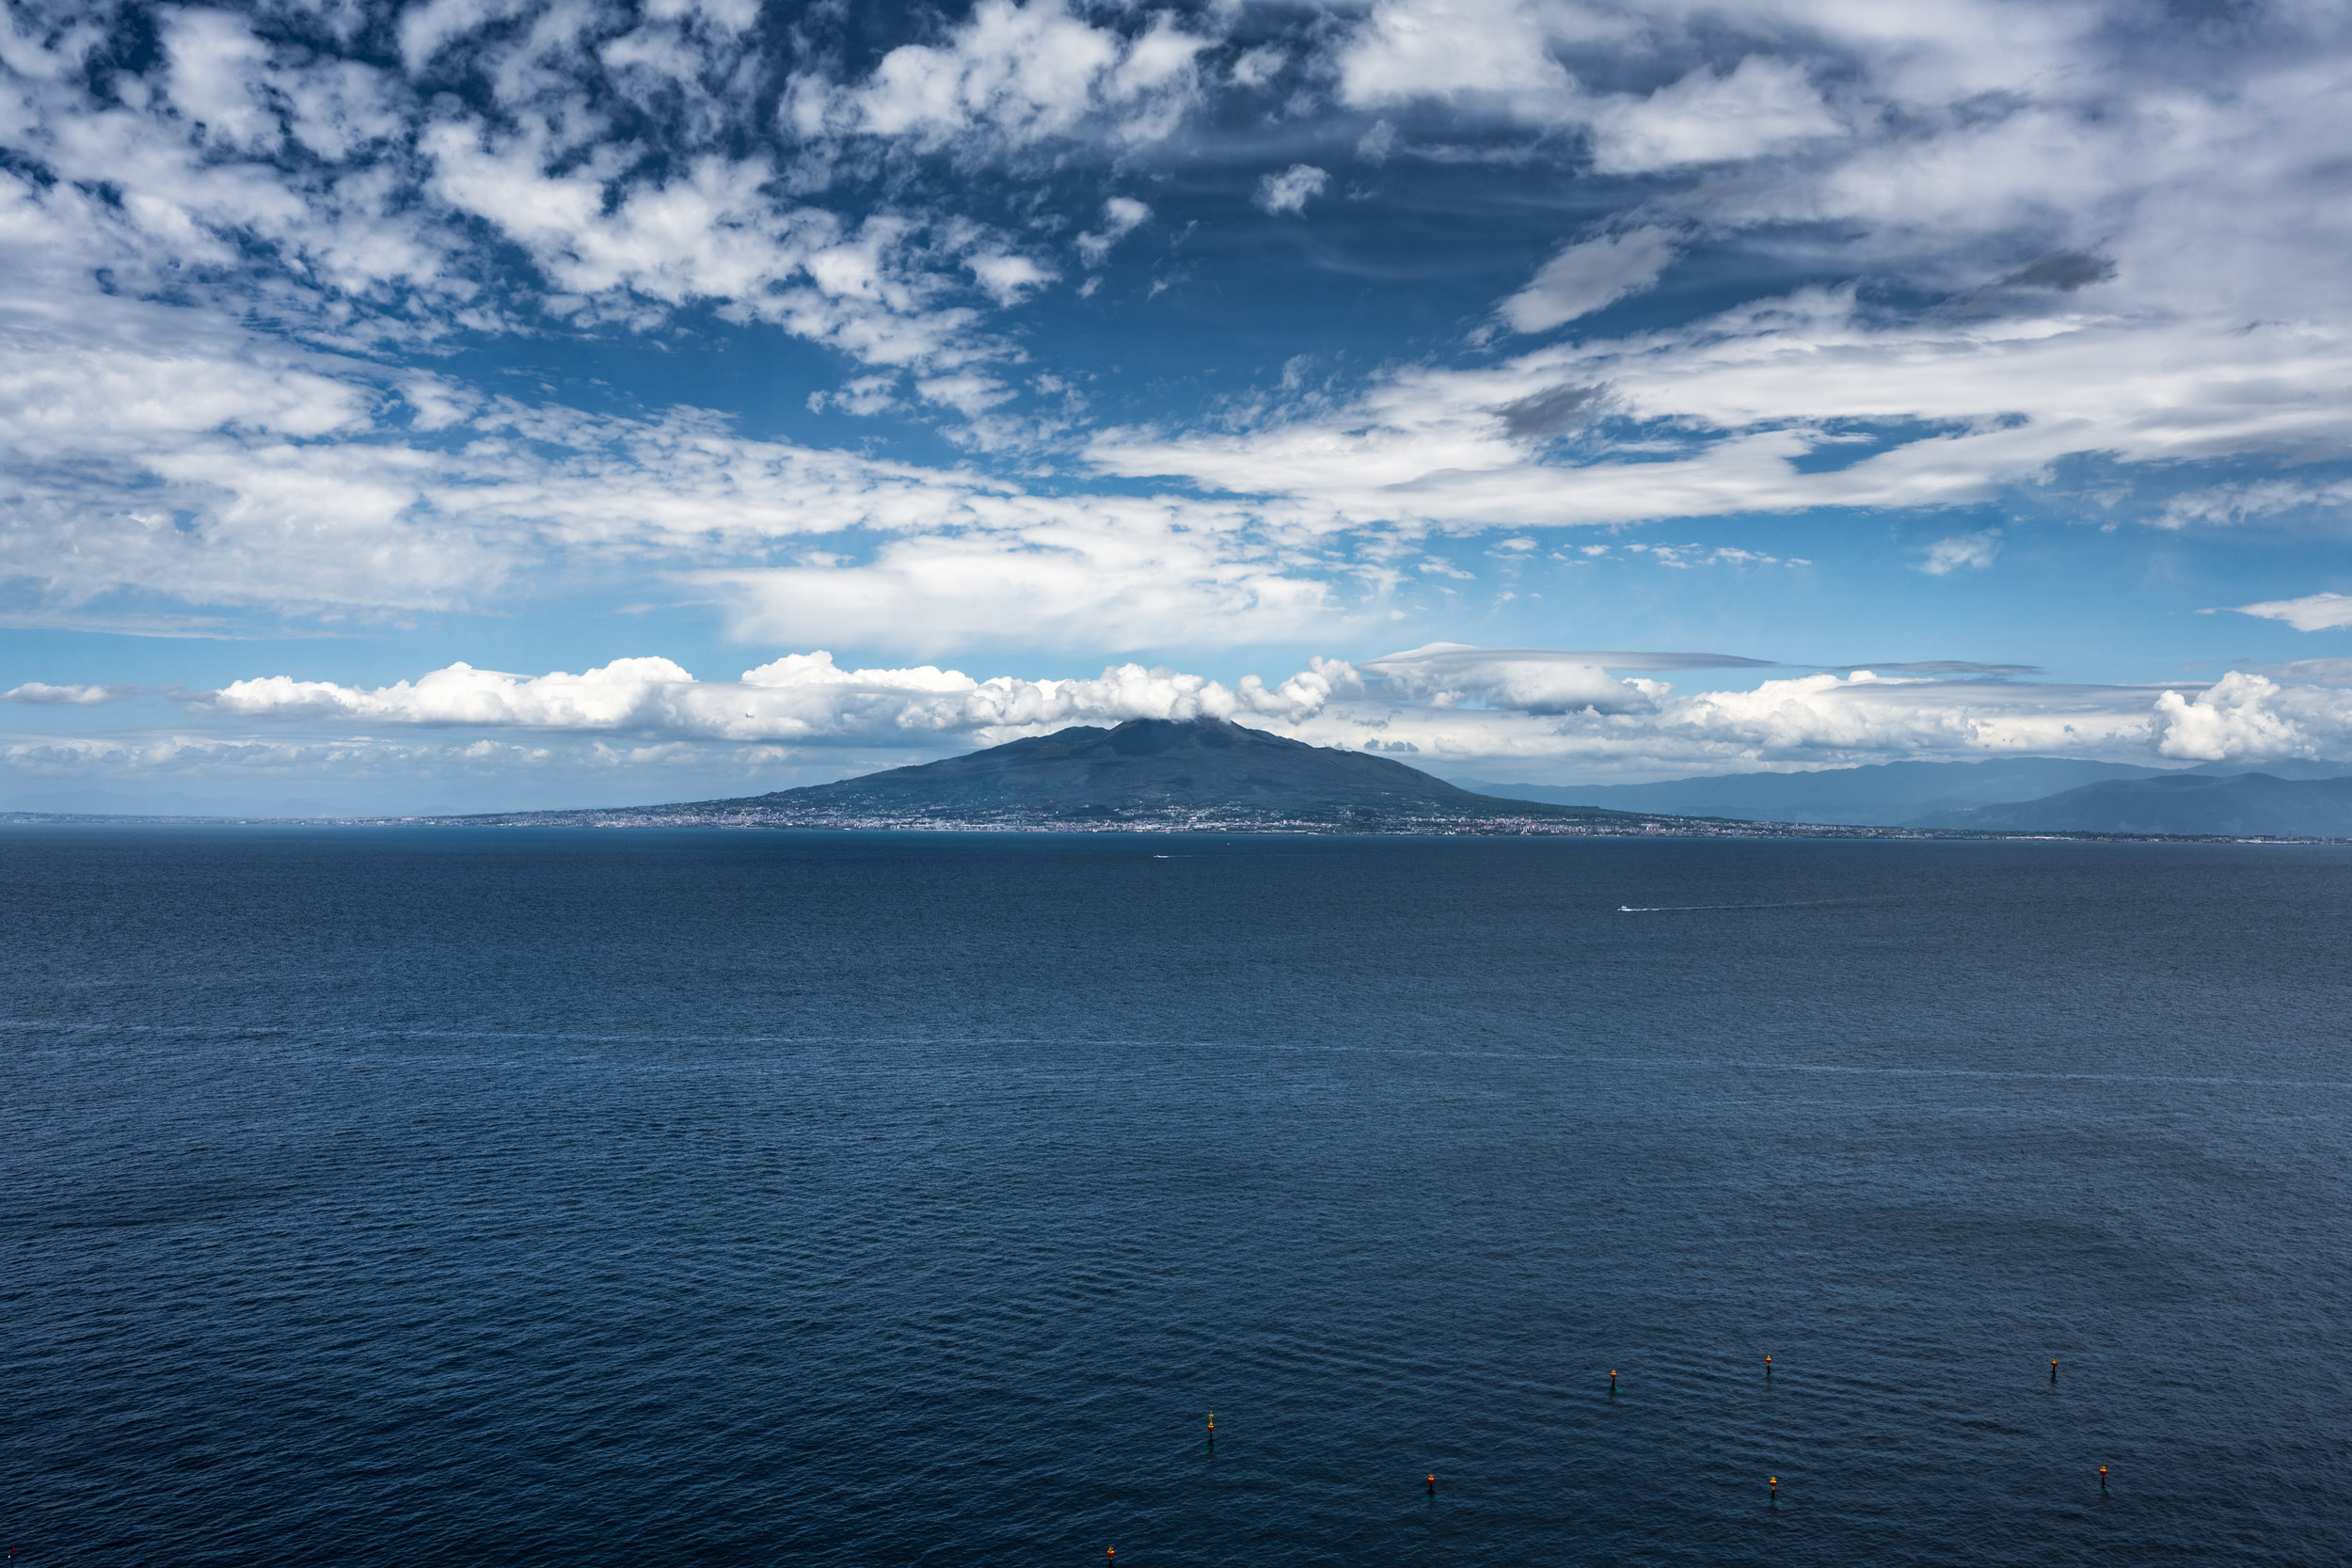 On a clear day you can see Mount Vesuvius towering on the opposite side of the Bay of Naples.